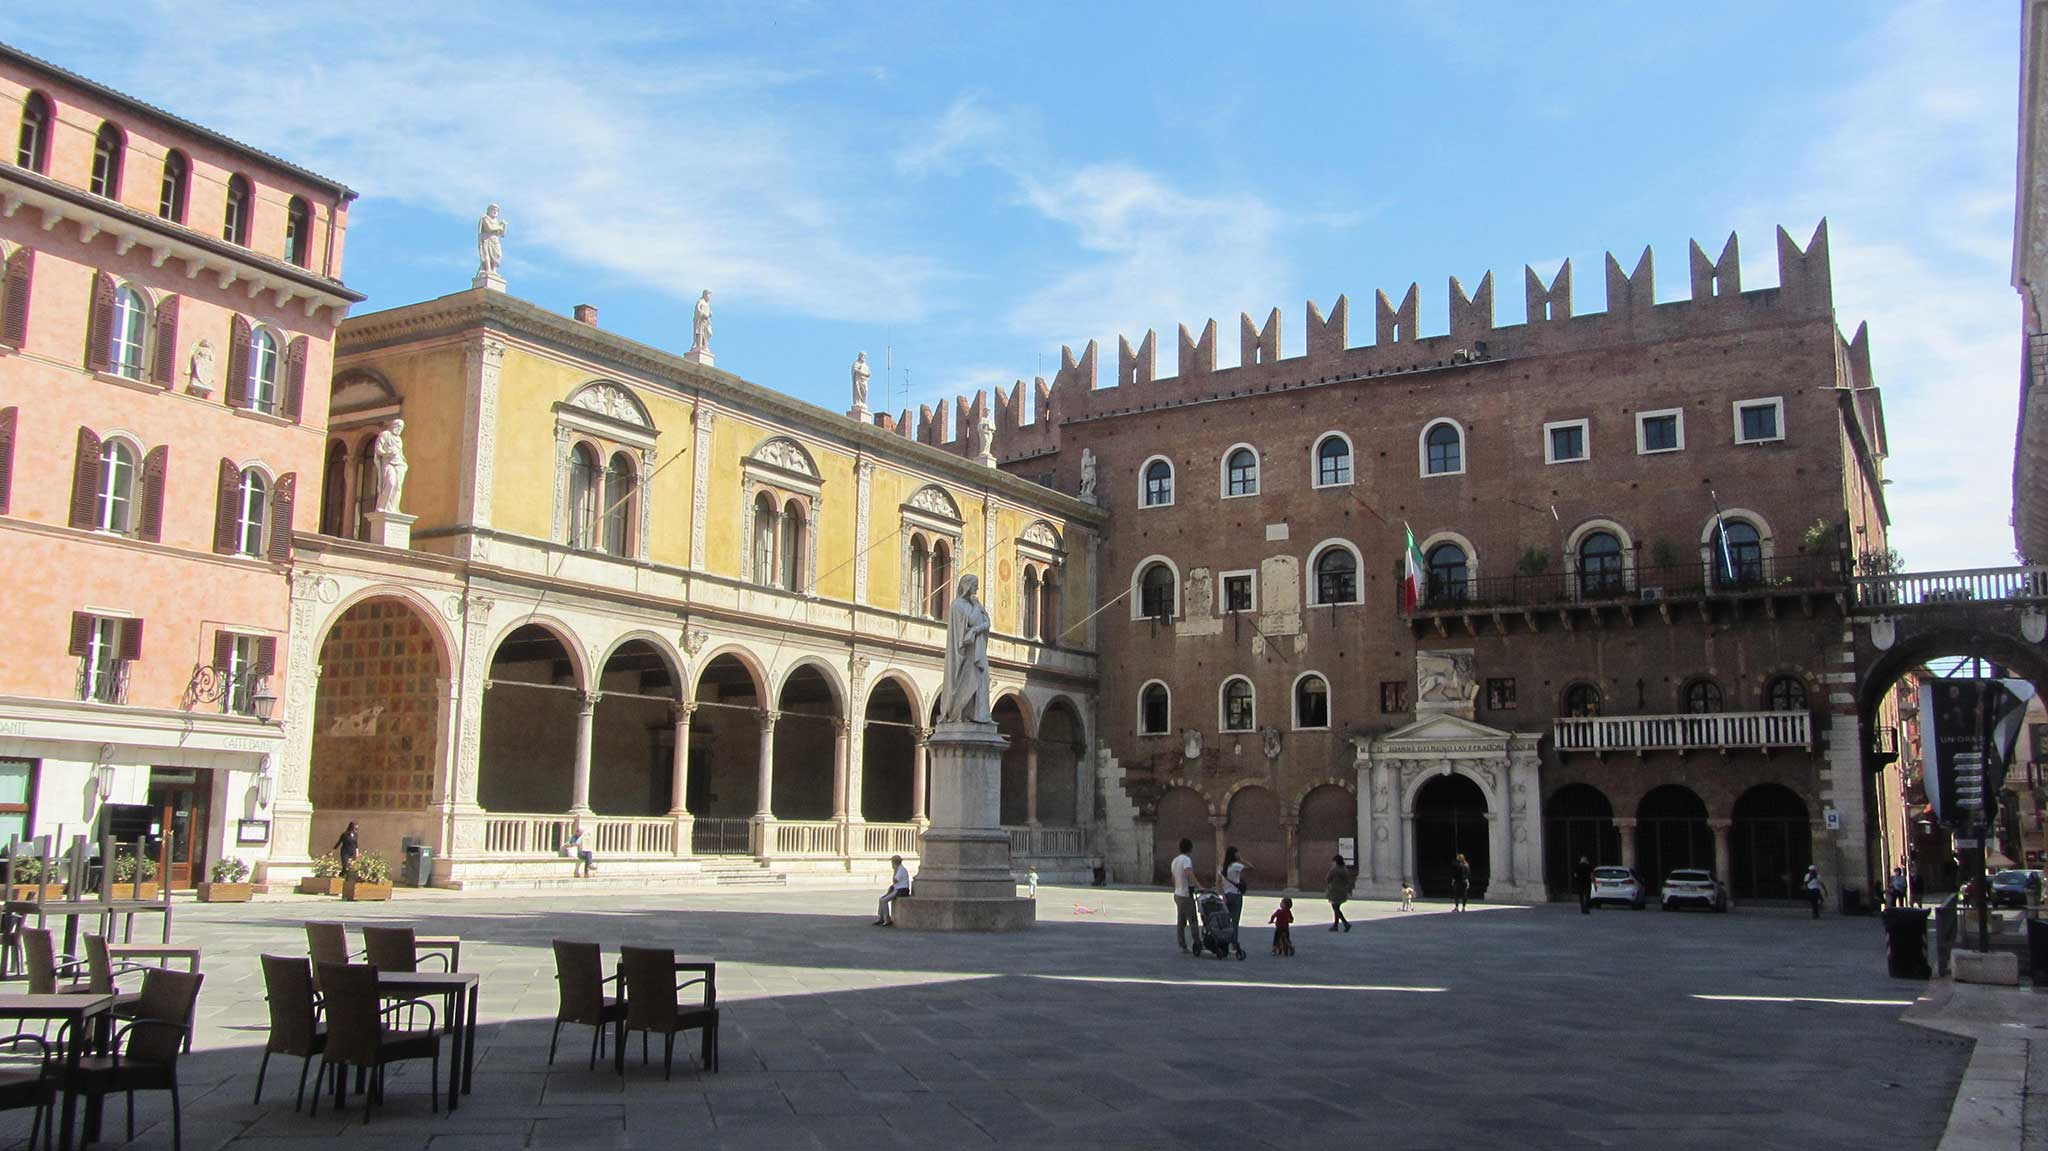 Piazza dei Signori on Verona audio tour A stroll through the city of Romeo and Juliet